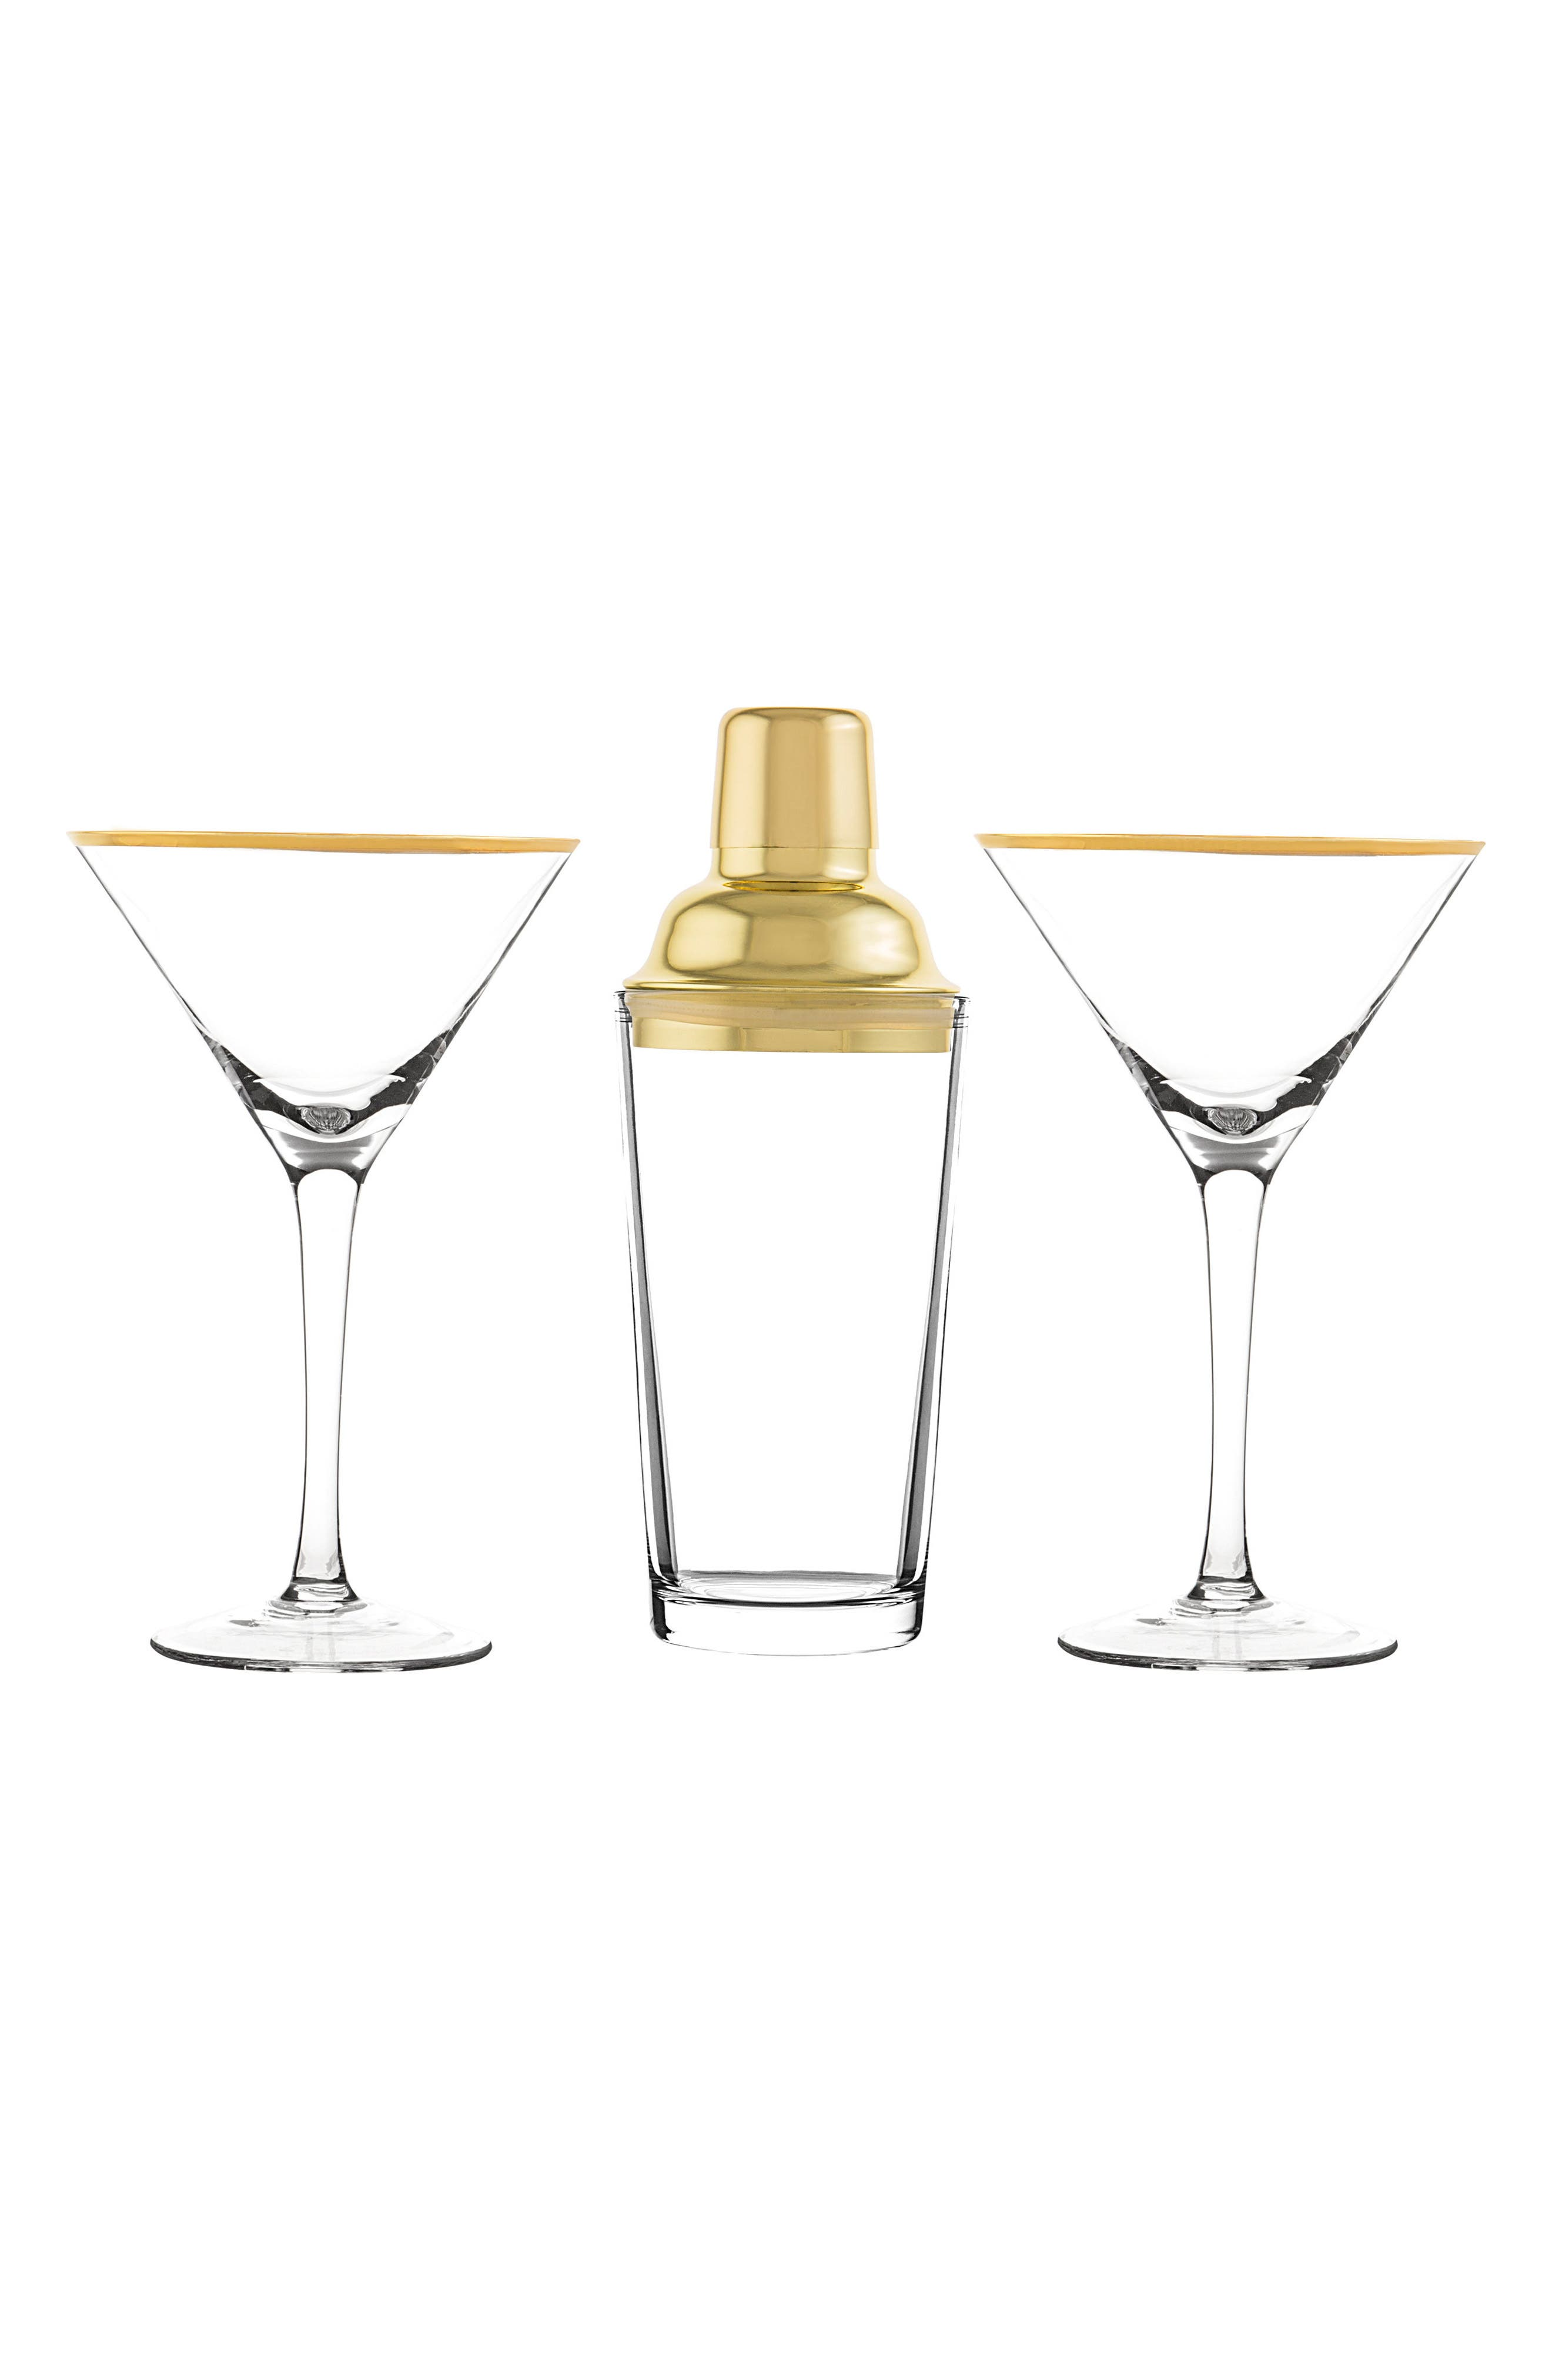 Monogram Martini Glasses & Goldtone Cocktail Shaker,                             Main thumbnail 1, color,                             710